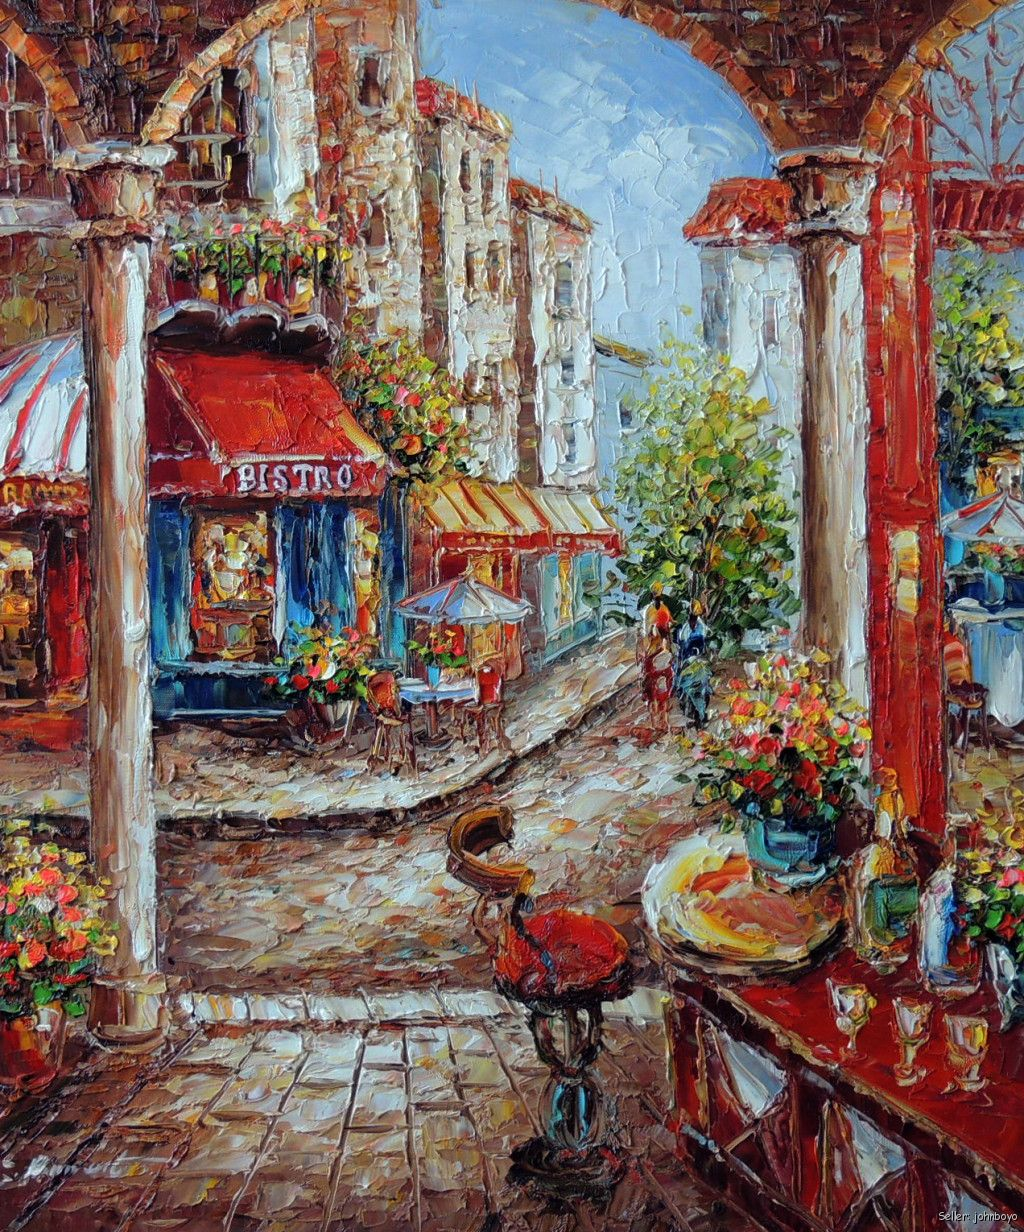 Italian Town Bistro Bar Restaurant Flowers Sidewalk Table